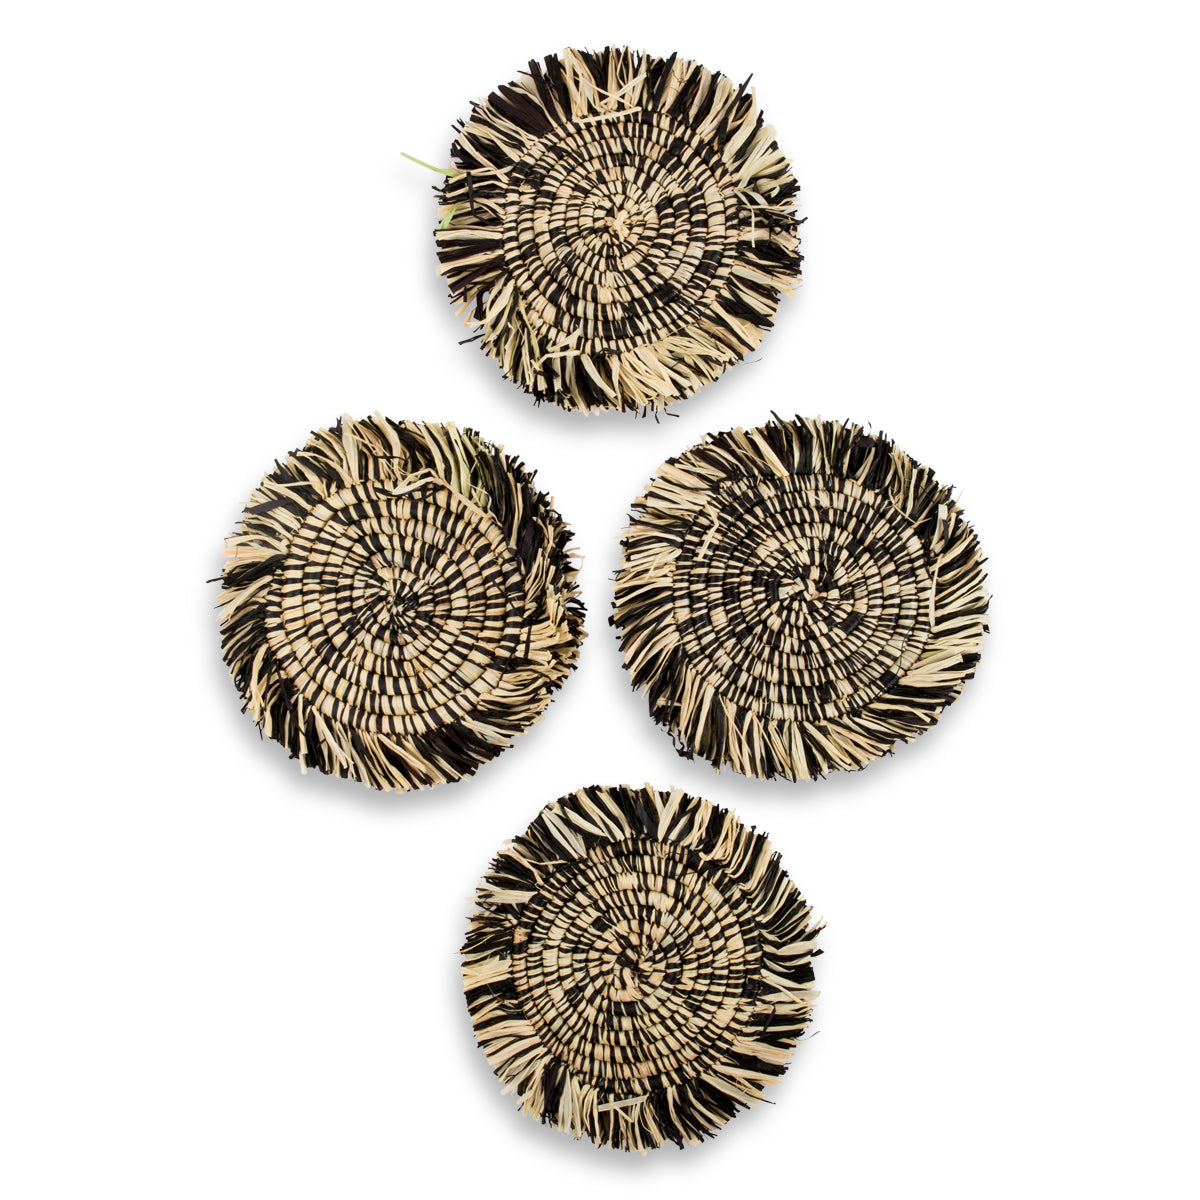 Beachfront Fringed Coasters - Black